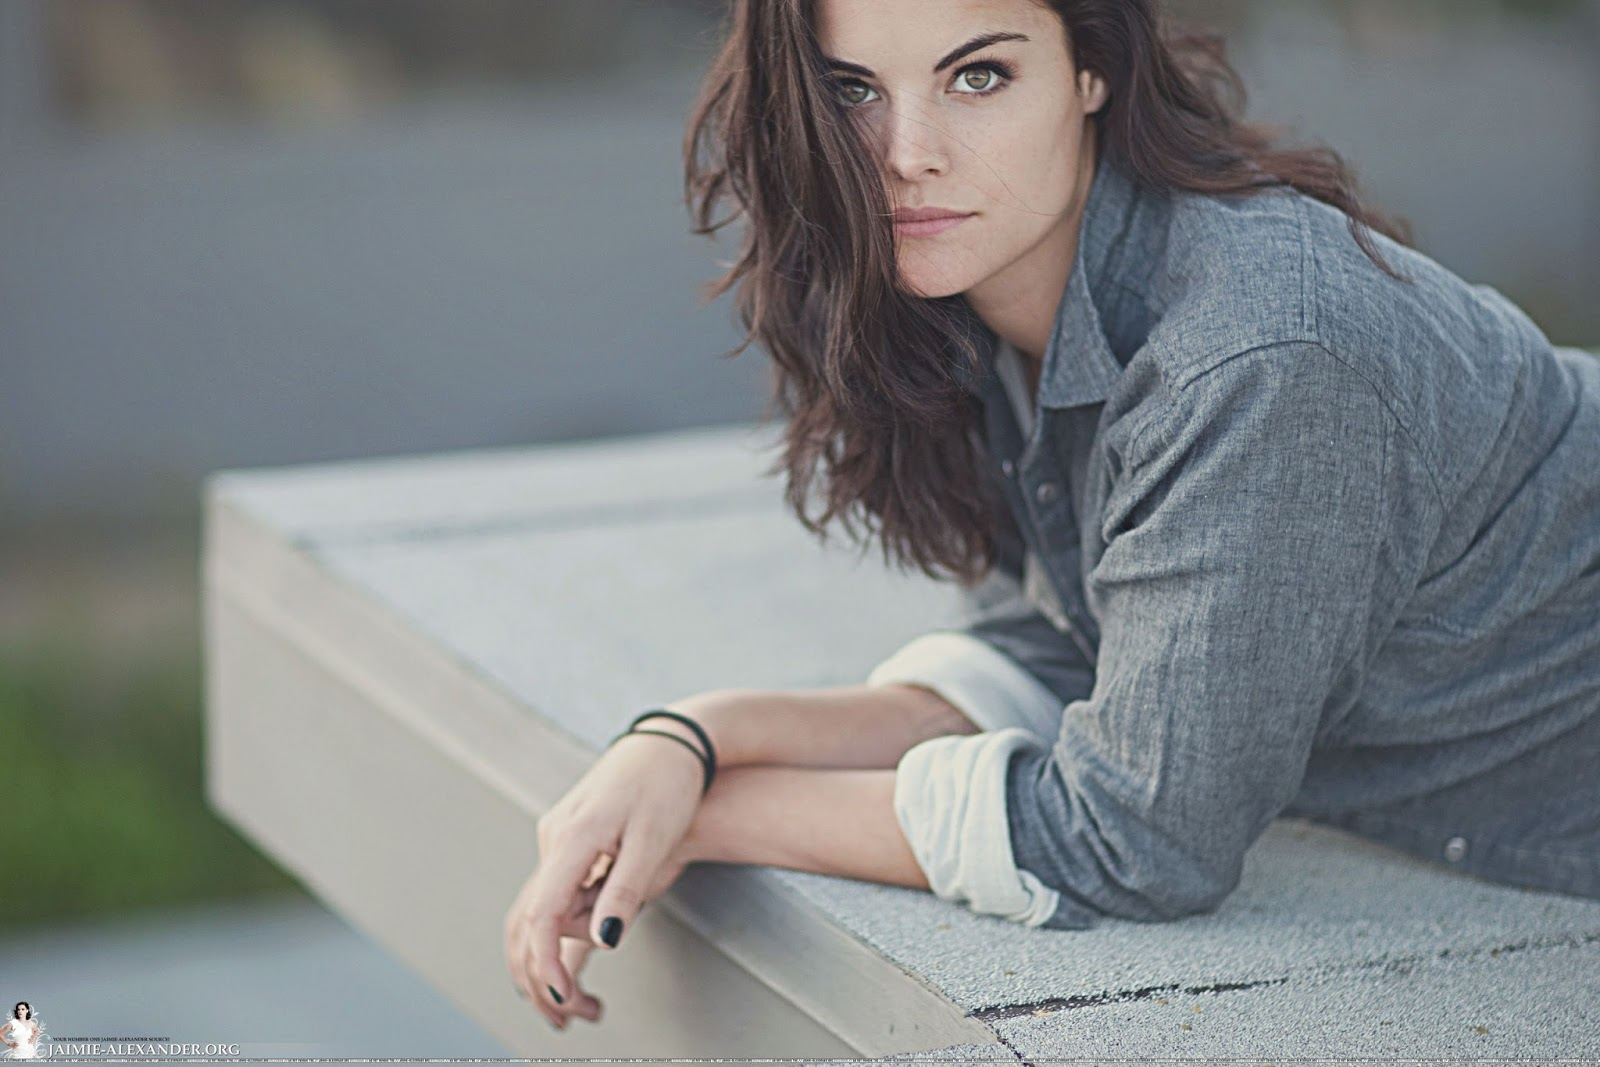 Download this Jaimie Alexander picture